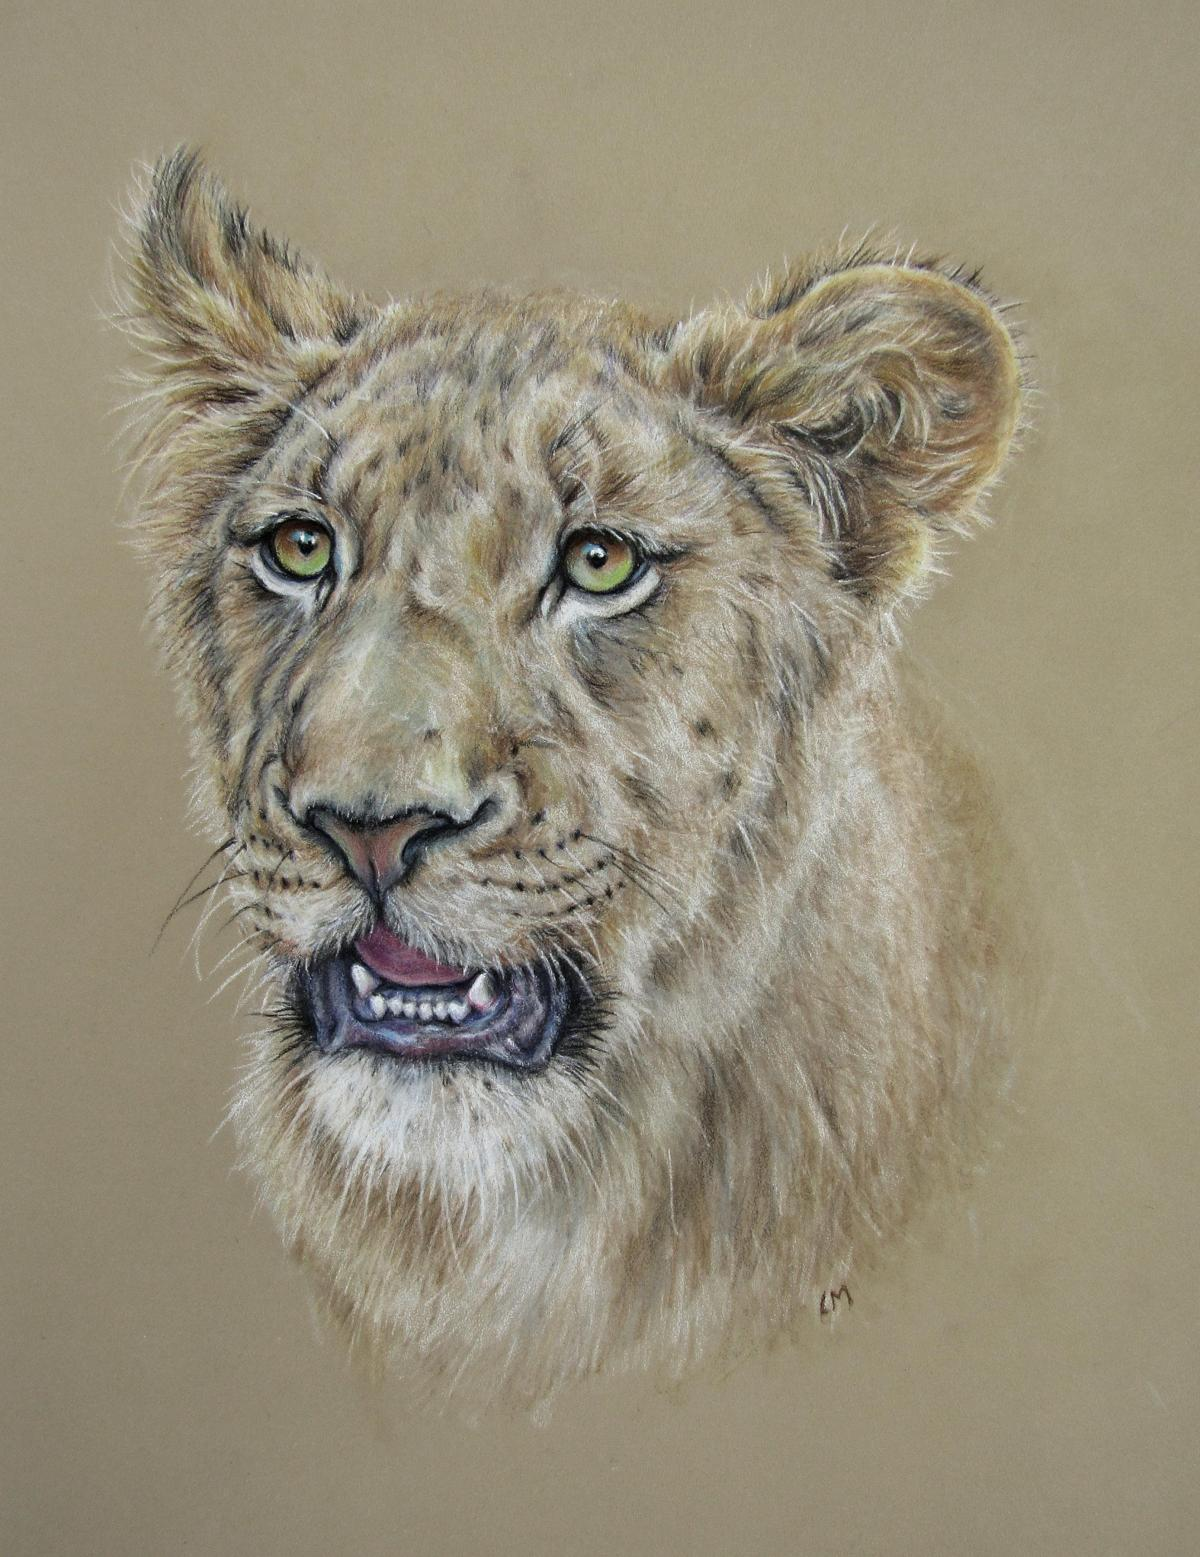 African Lioness | Wallhanging by Linda Martin | Artists for Conservation 2020